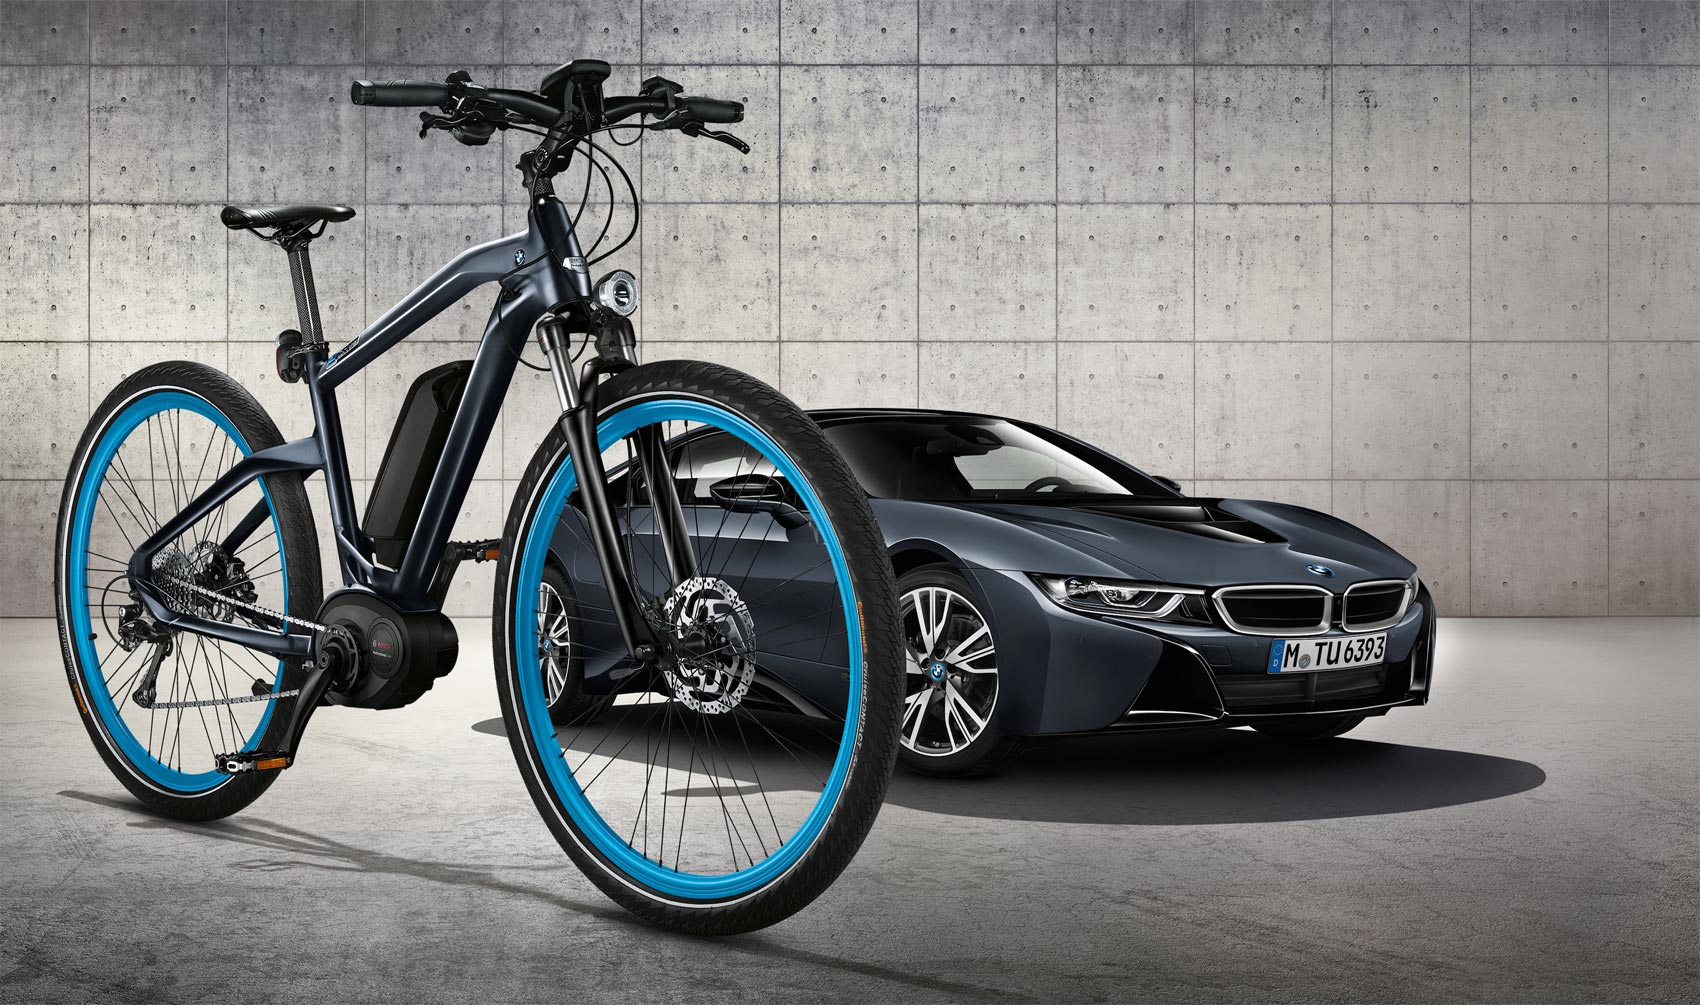 The Limited Edition BMW Protonic Dark Silver Cruise e-Bike